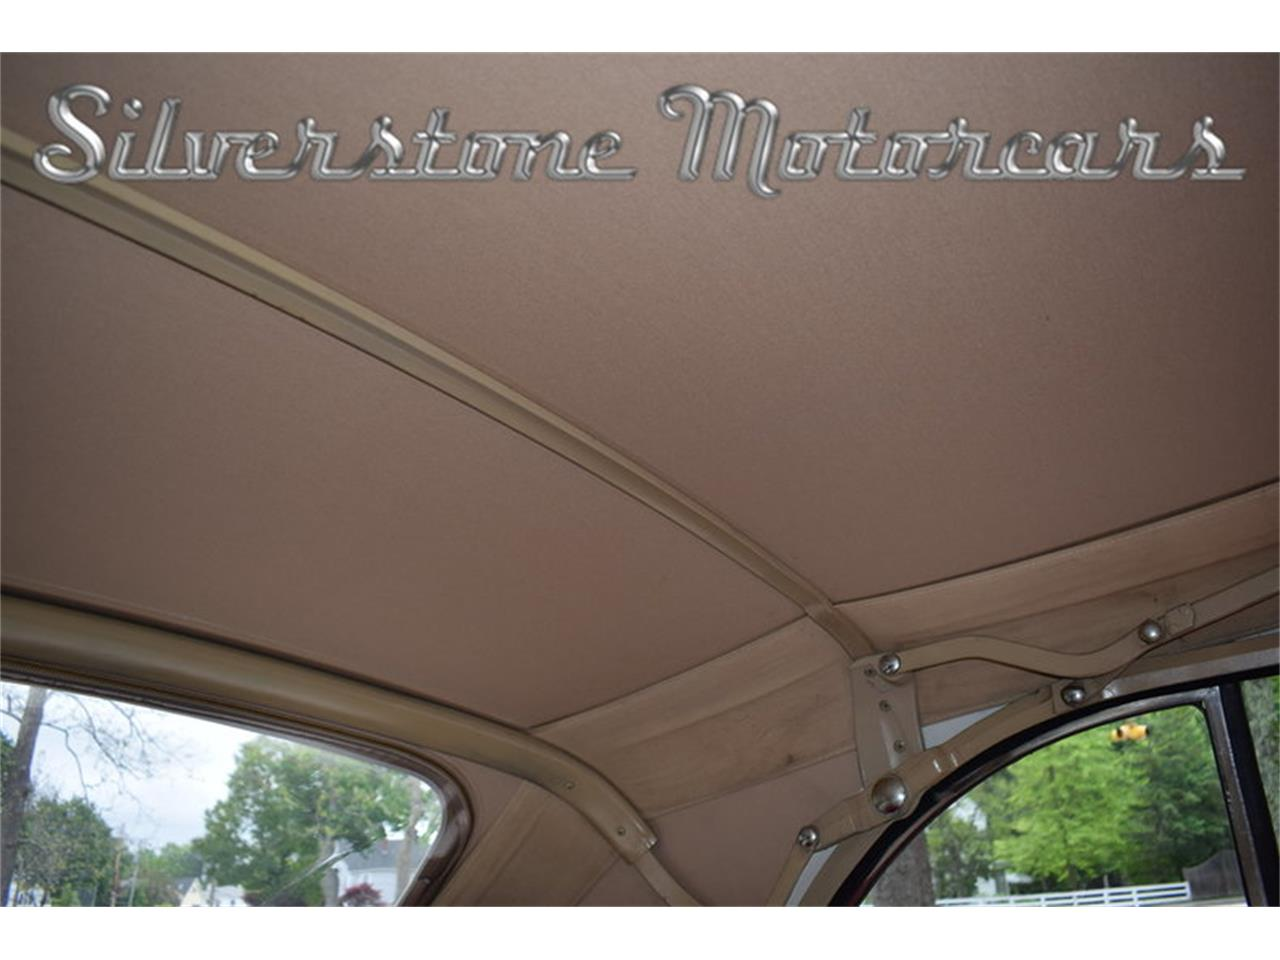 Large Picture of Classic 1951 Ford Custom Deluxe Offered by Silverstone Motorcars - L79S